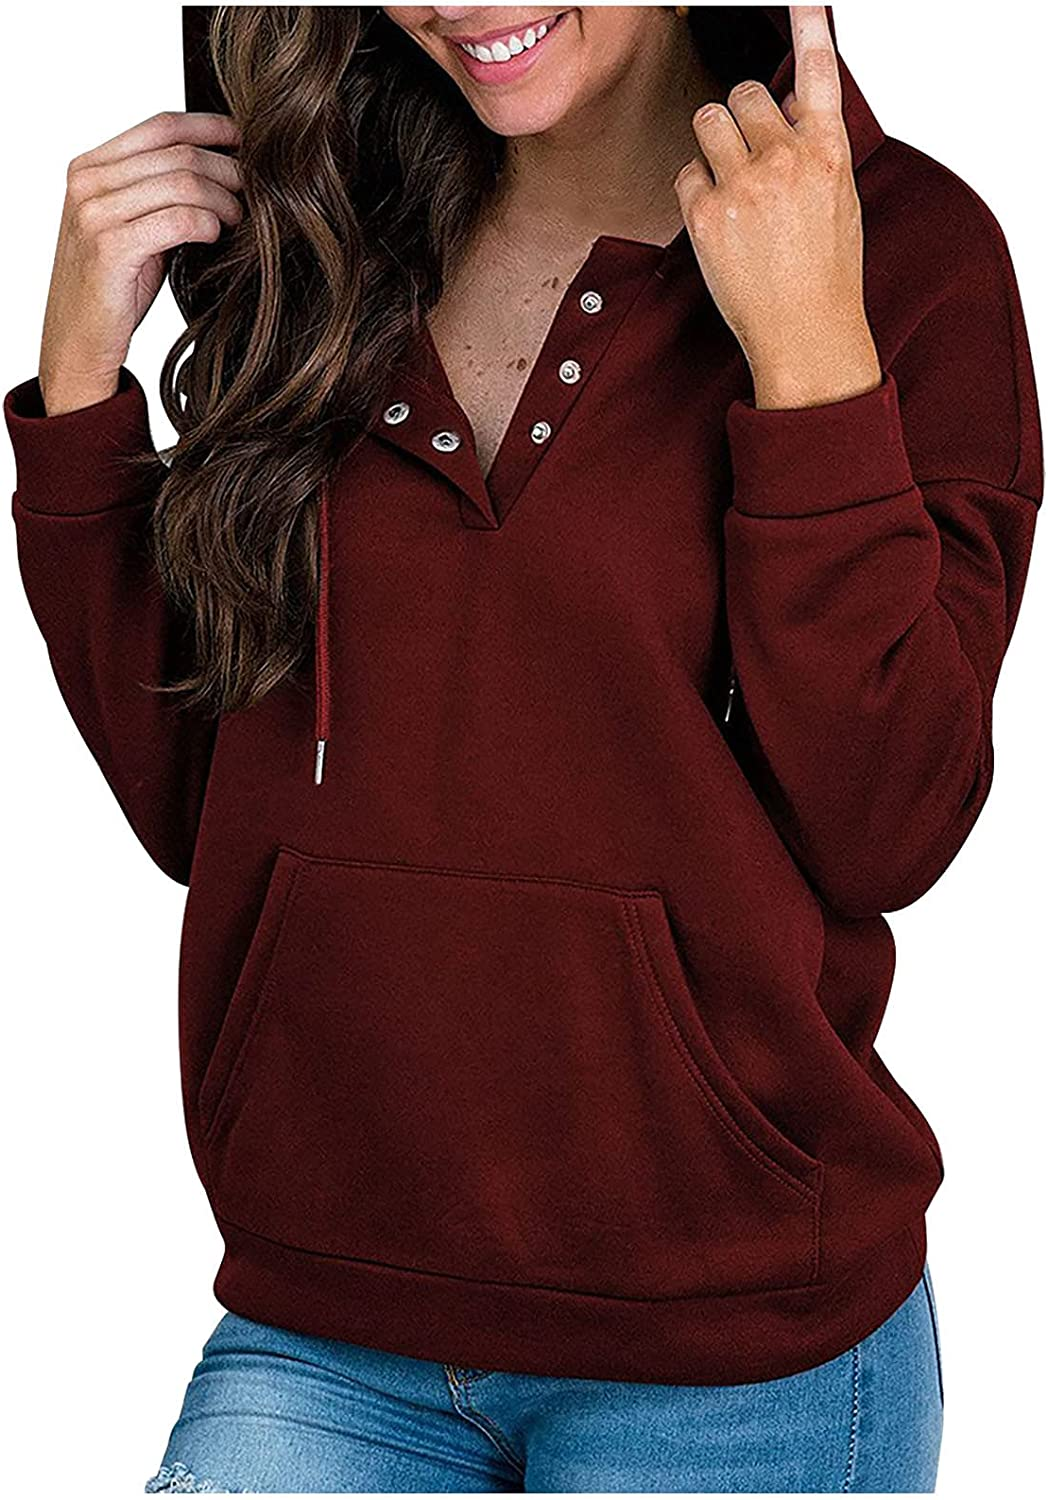 Women's Fashion Hoodies Sweatshirts V-Neck Solid Hooded Pullover Casual Pocket Long Sleeve T-Shirts Tops